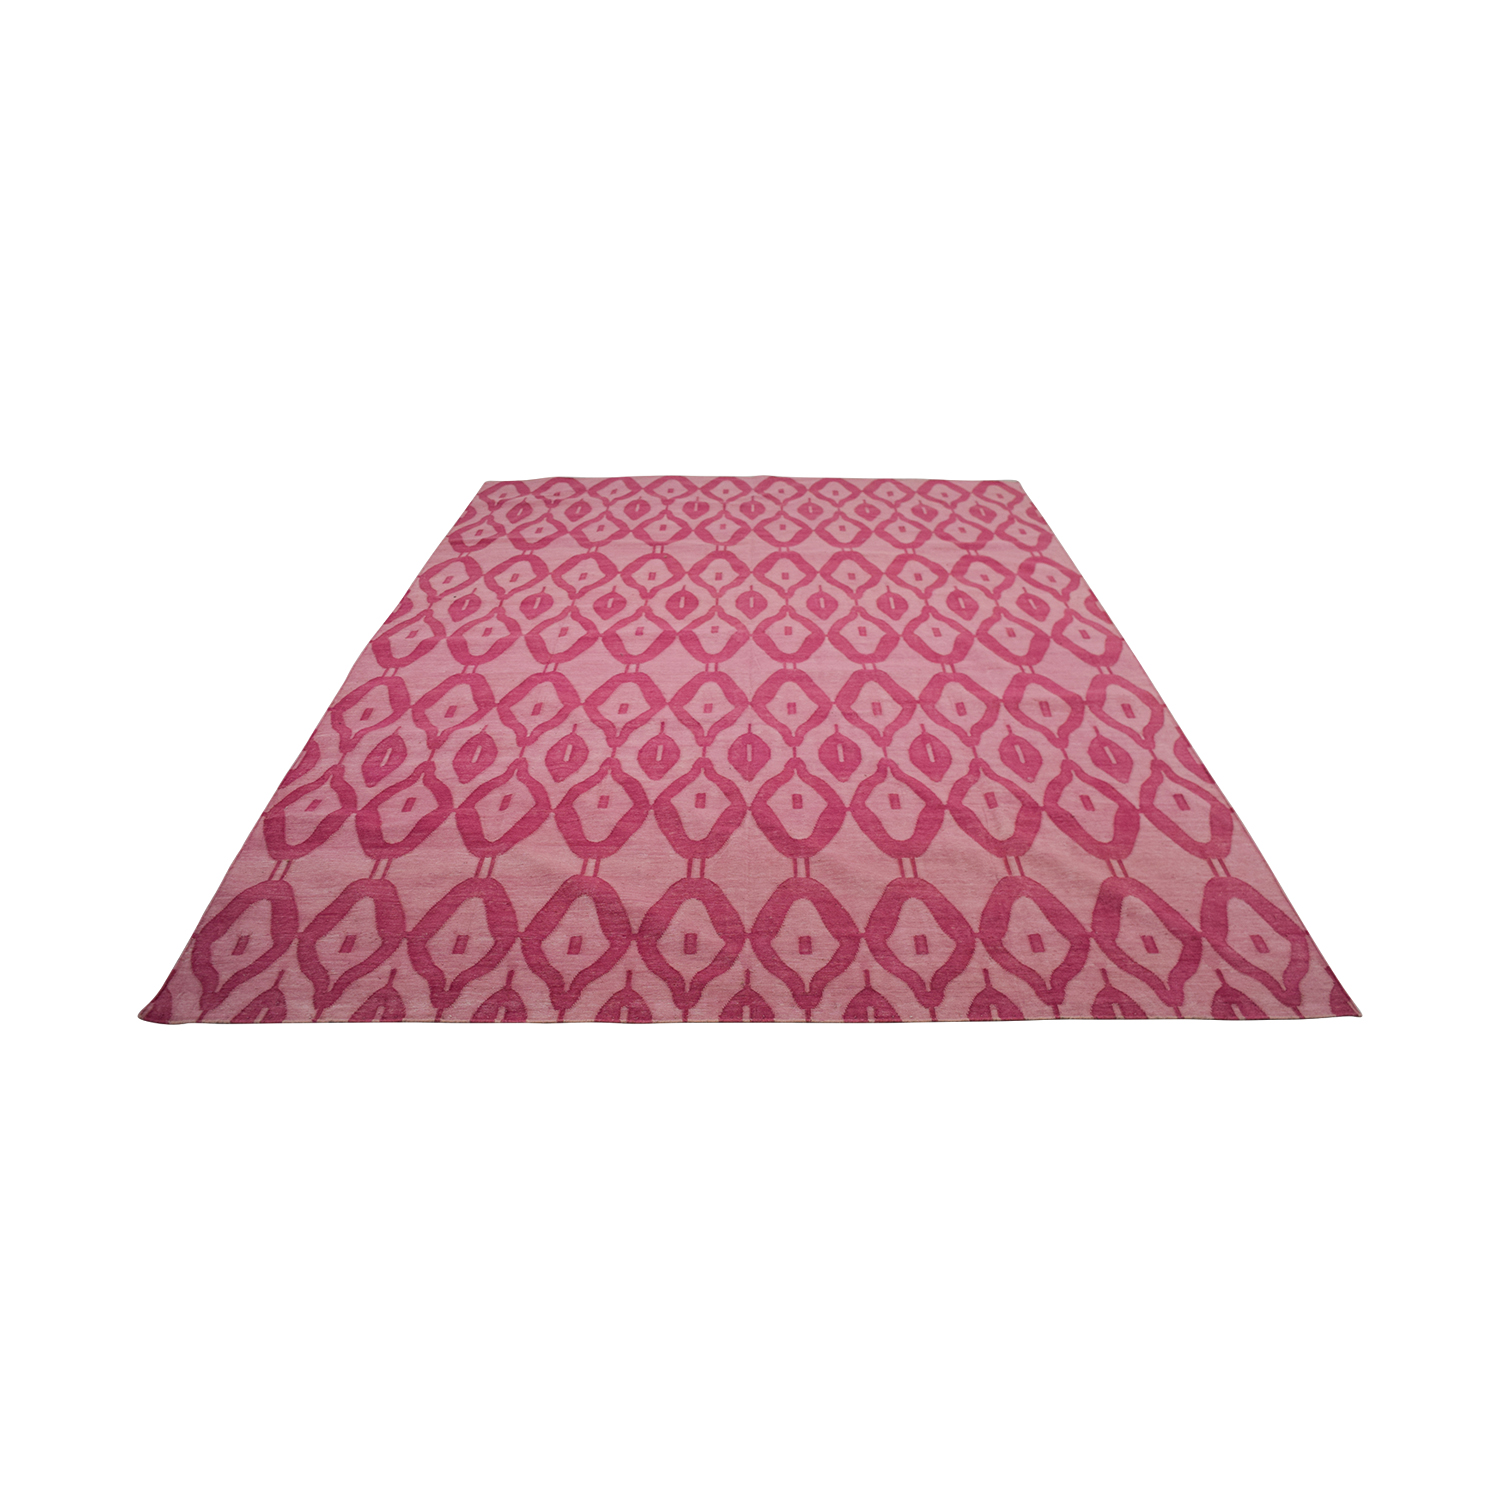 Obeetee Obeetee Pink Geometric Rug coupon